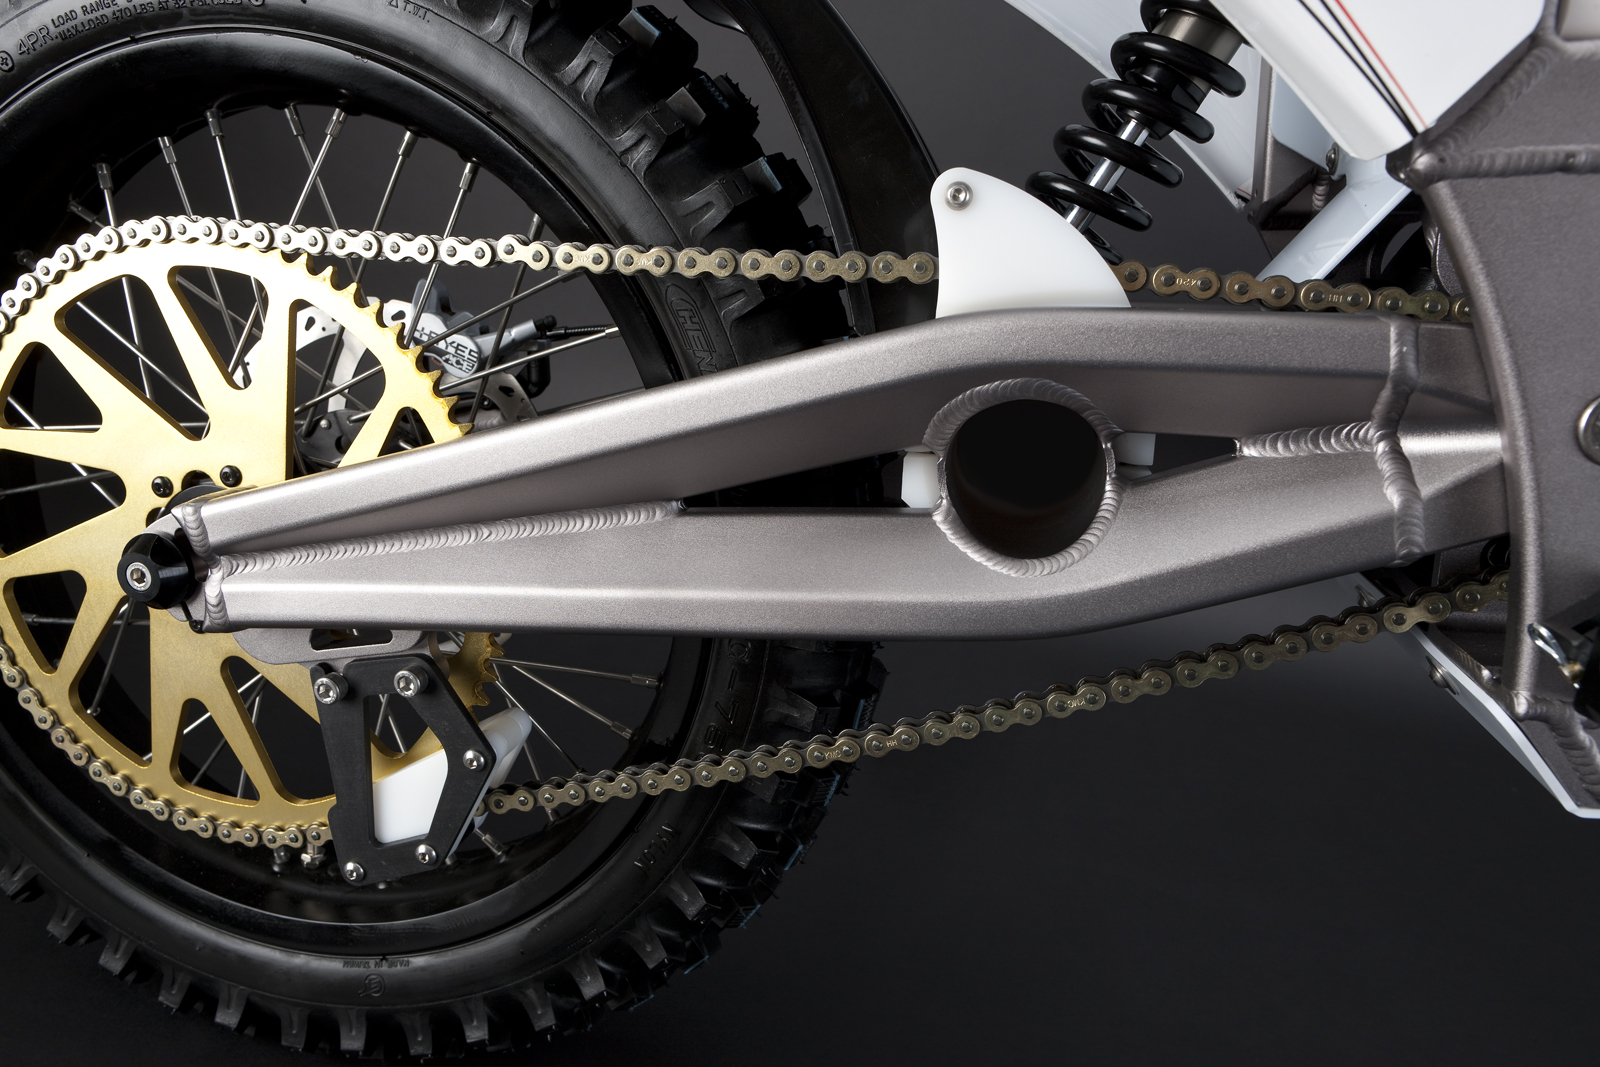 2010 Zero MX Electric Motorcycle: Swing Arm